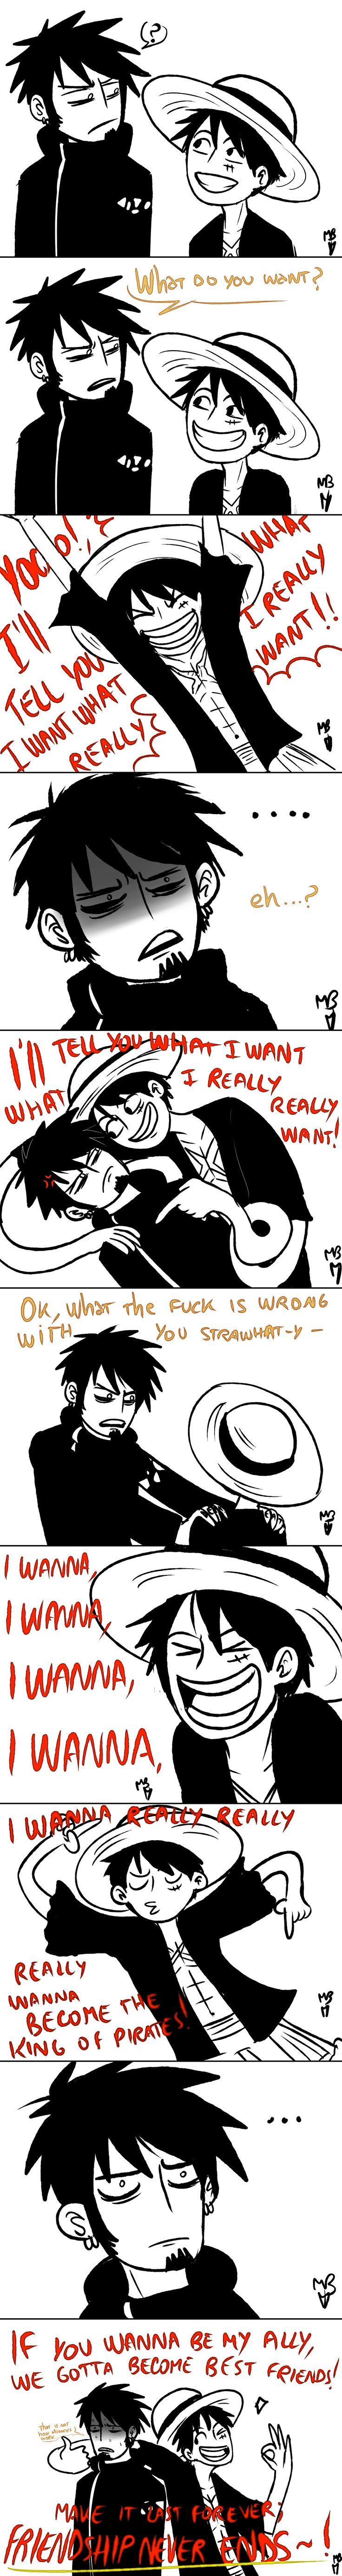 """Luffy and Law this made me laugh till I was crying xD funny thing is that I can imagine this happening xD law looks so terrified like """"what did I get myself in?!"""" And I love luffy :)"""